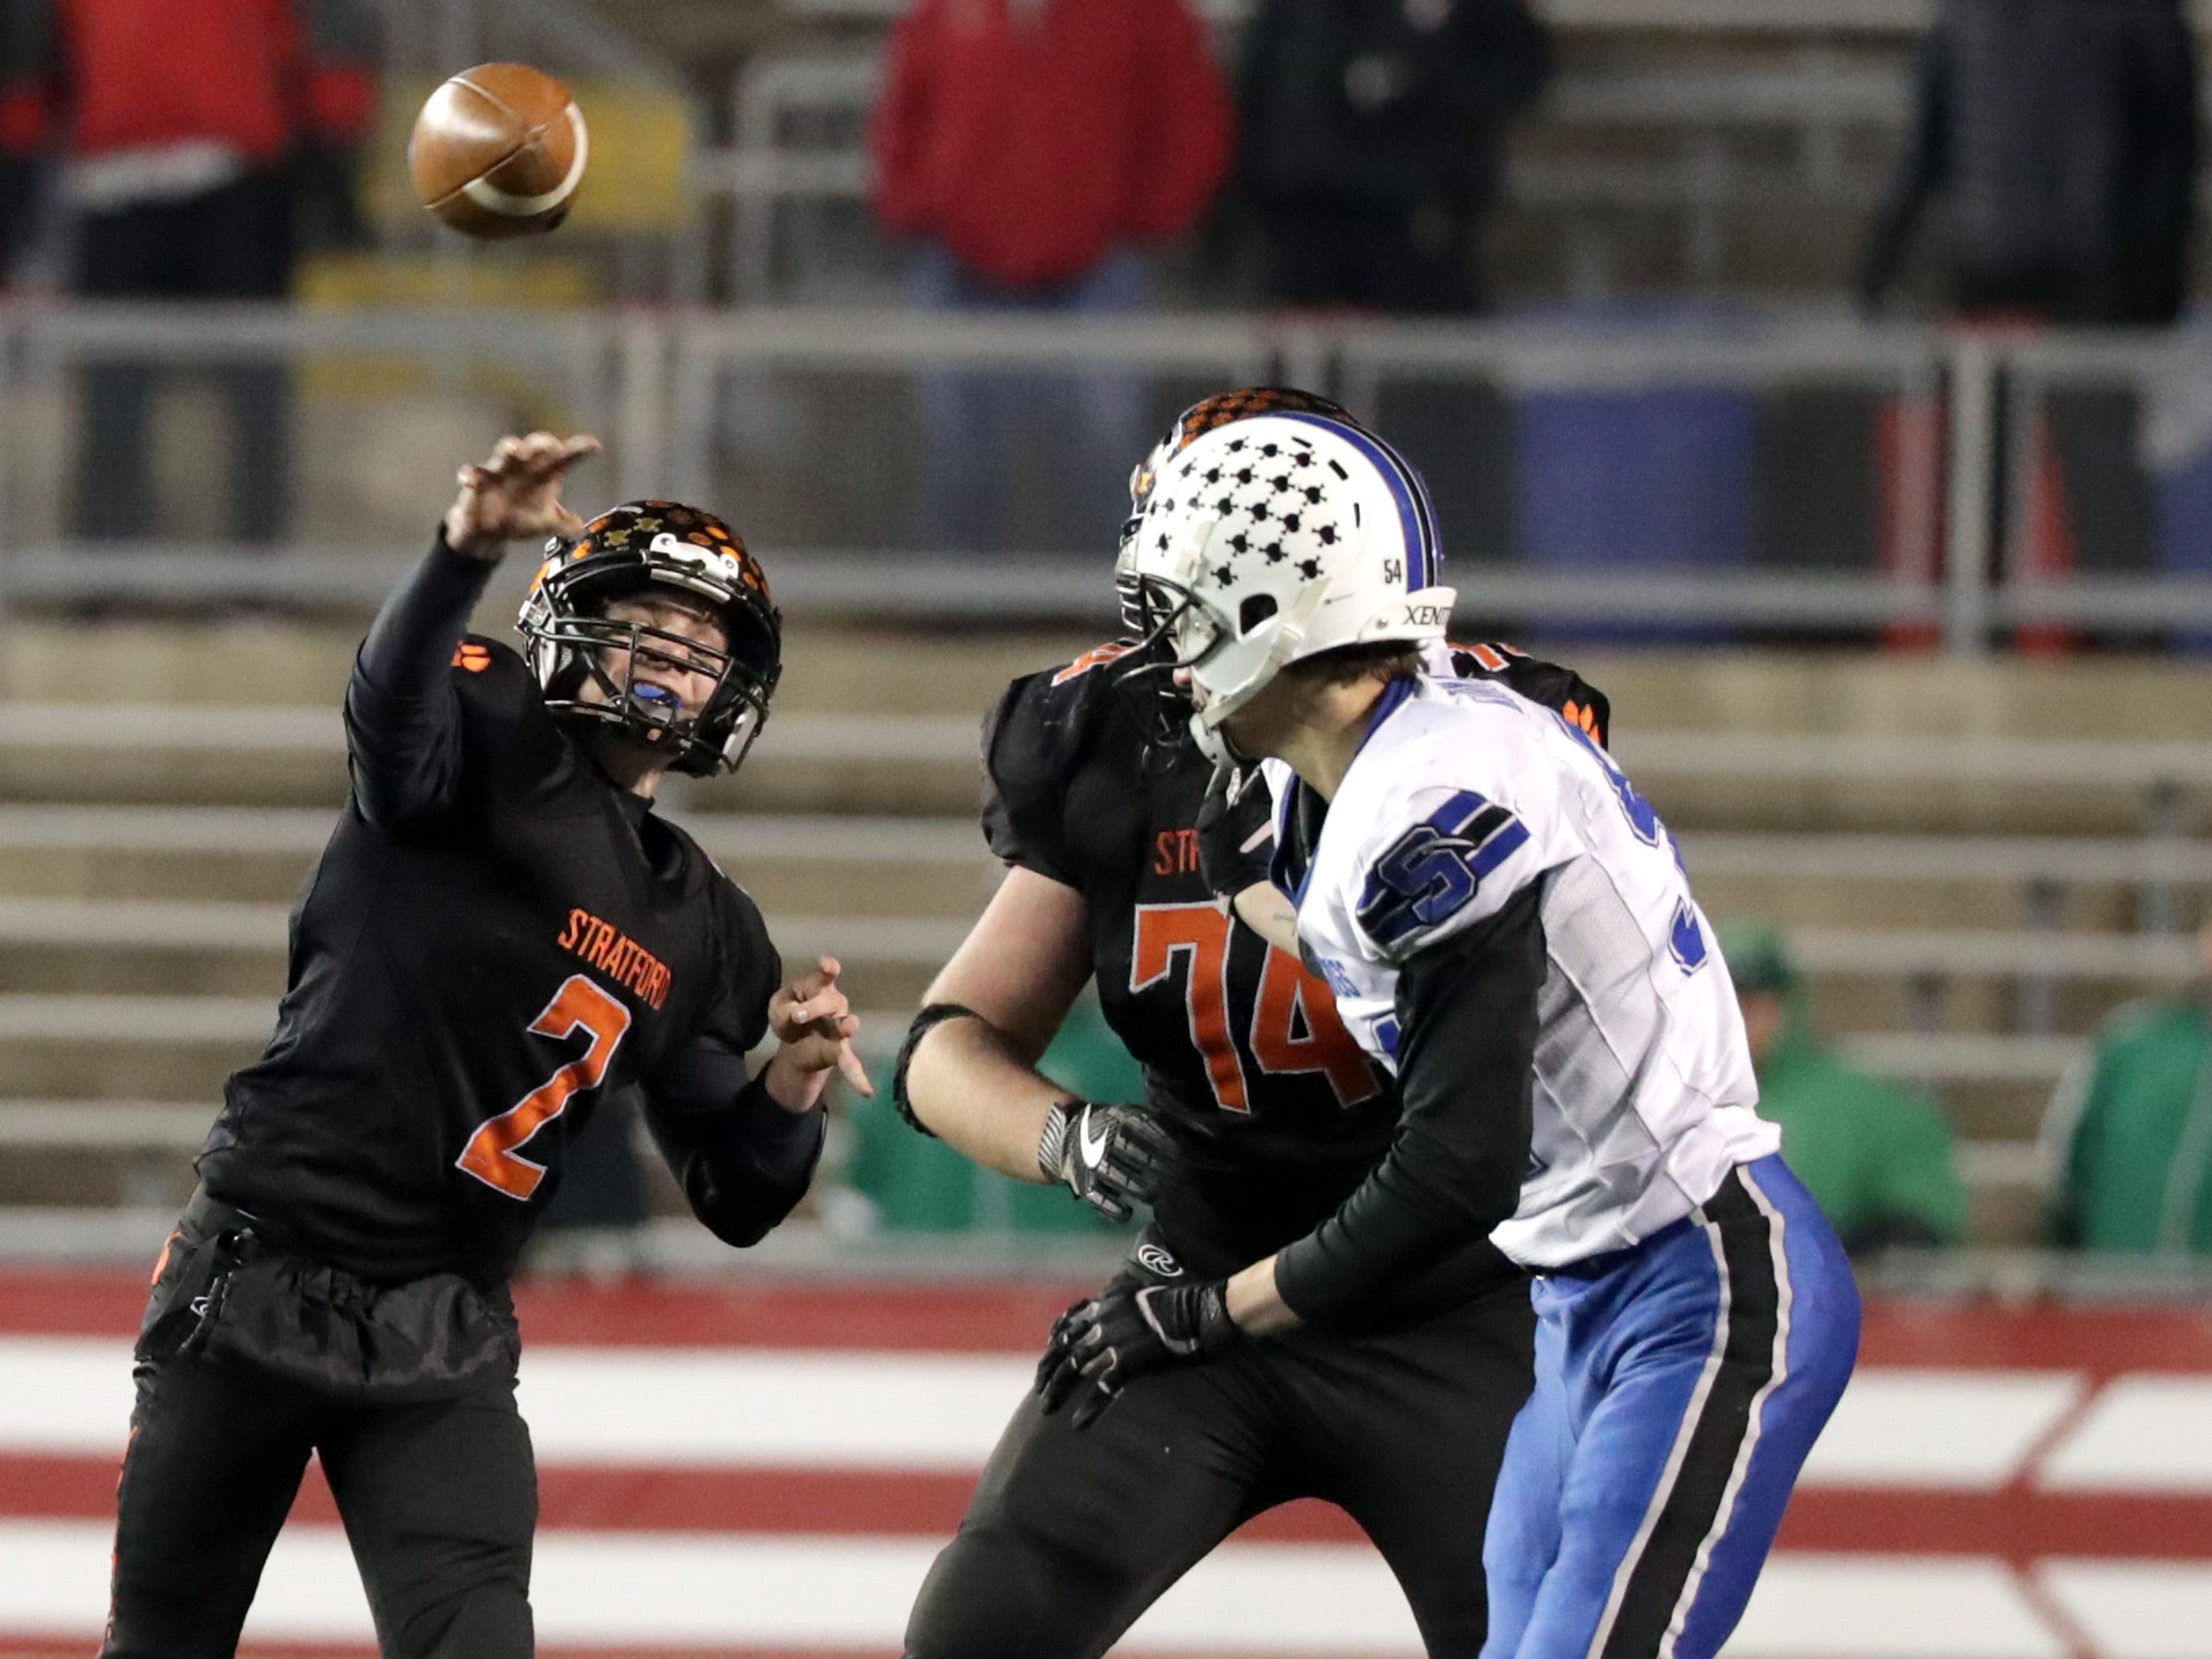 Stratford High School's #2 Max Schwabe against St. Mary's Springs Academy during the WIAA Division  5 state championship football game on Thursday, November 15, 2018, at Camp Randall in Madison, Wis.